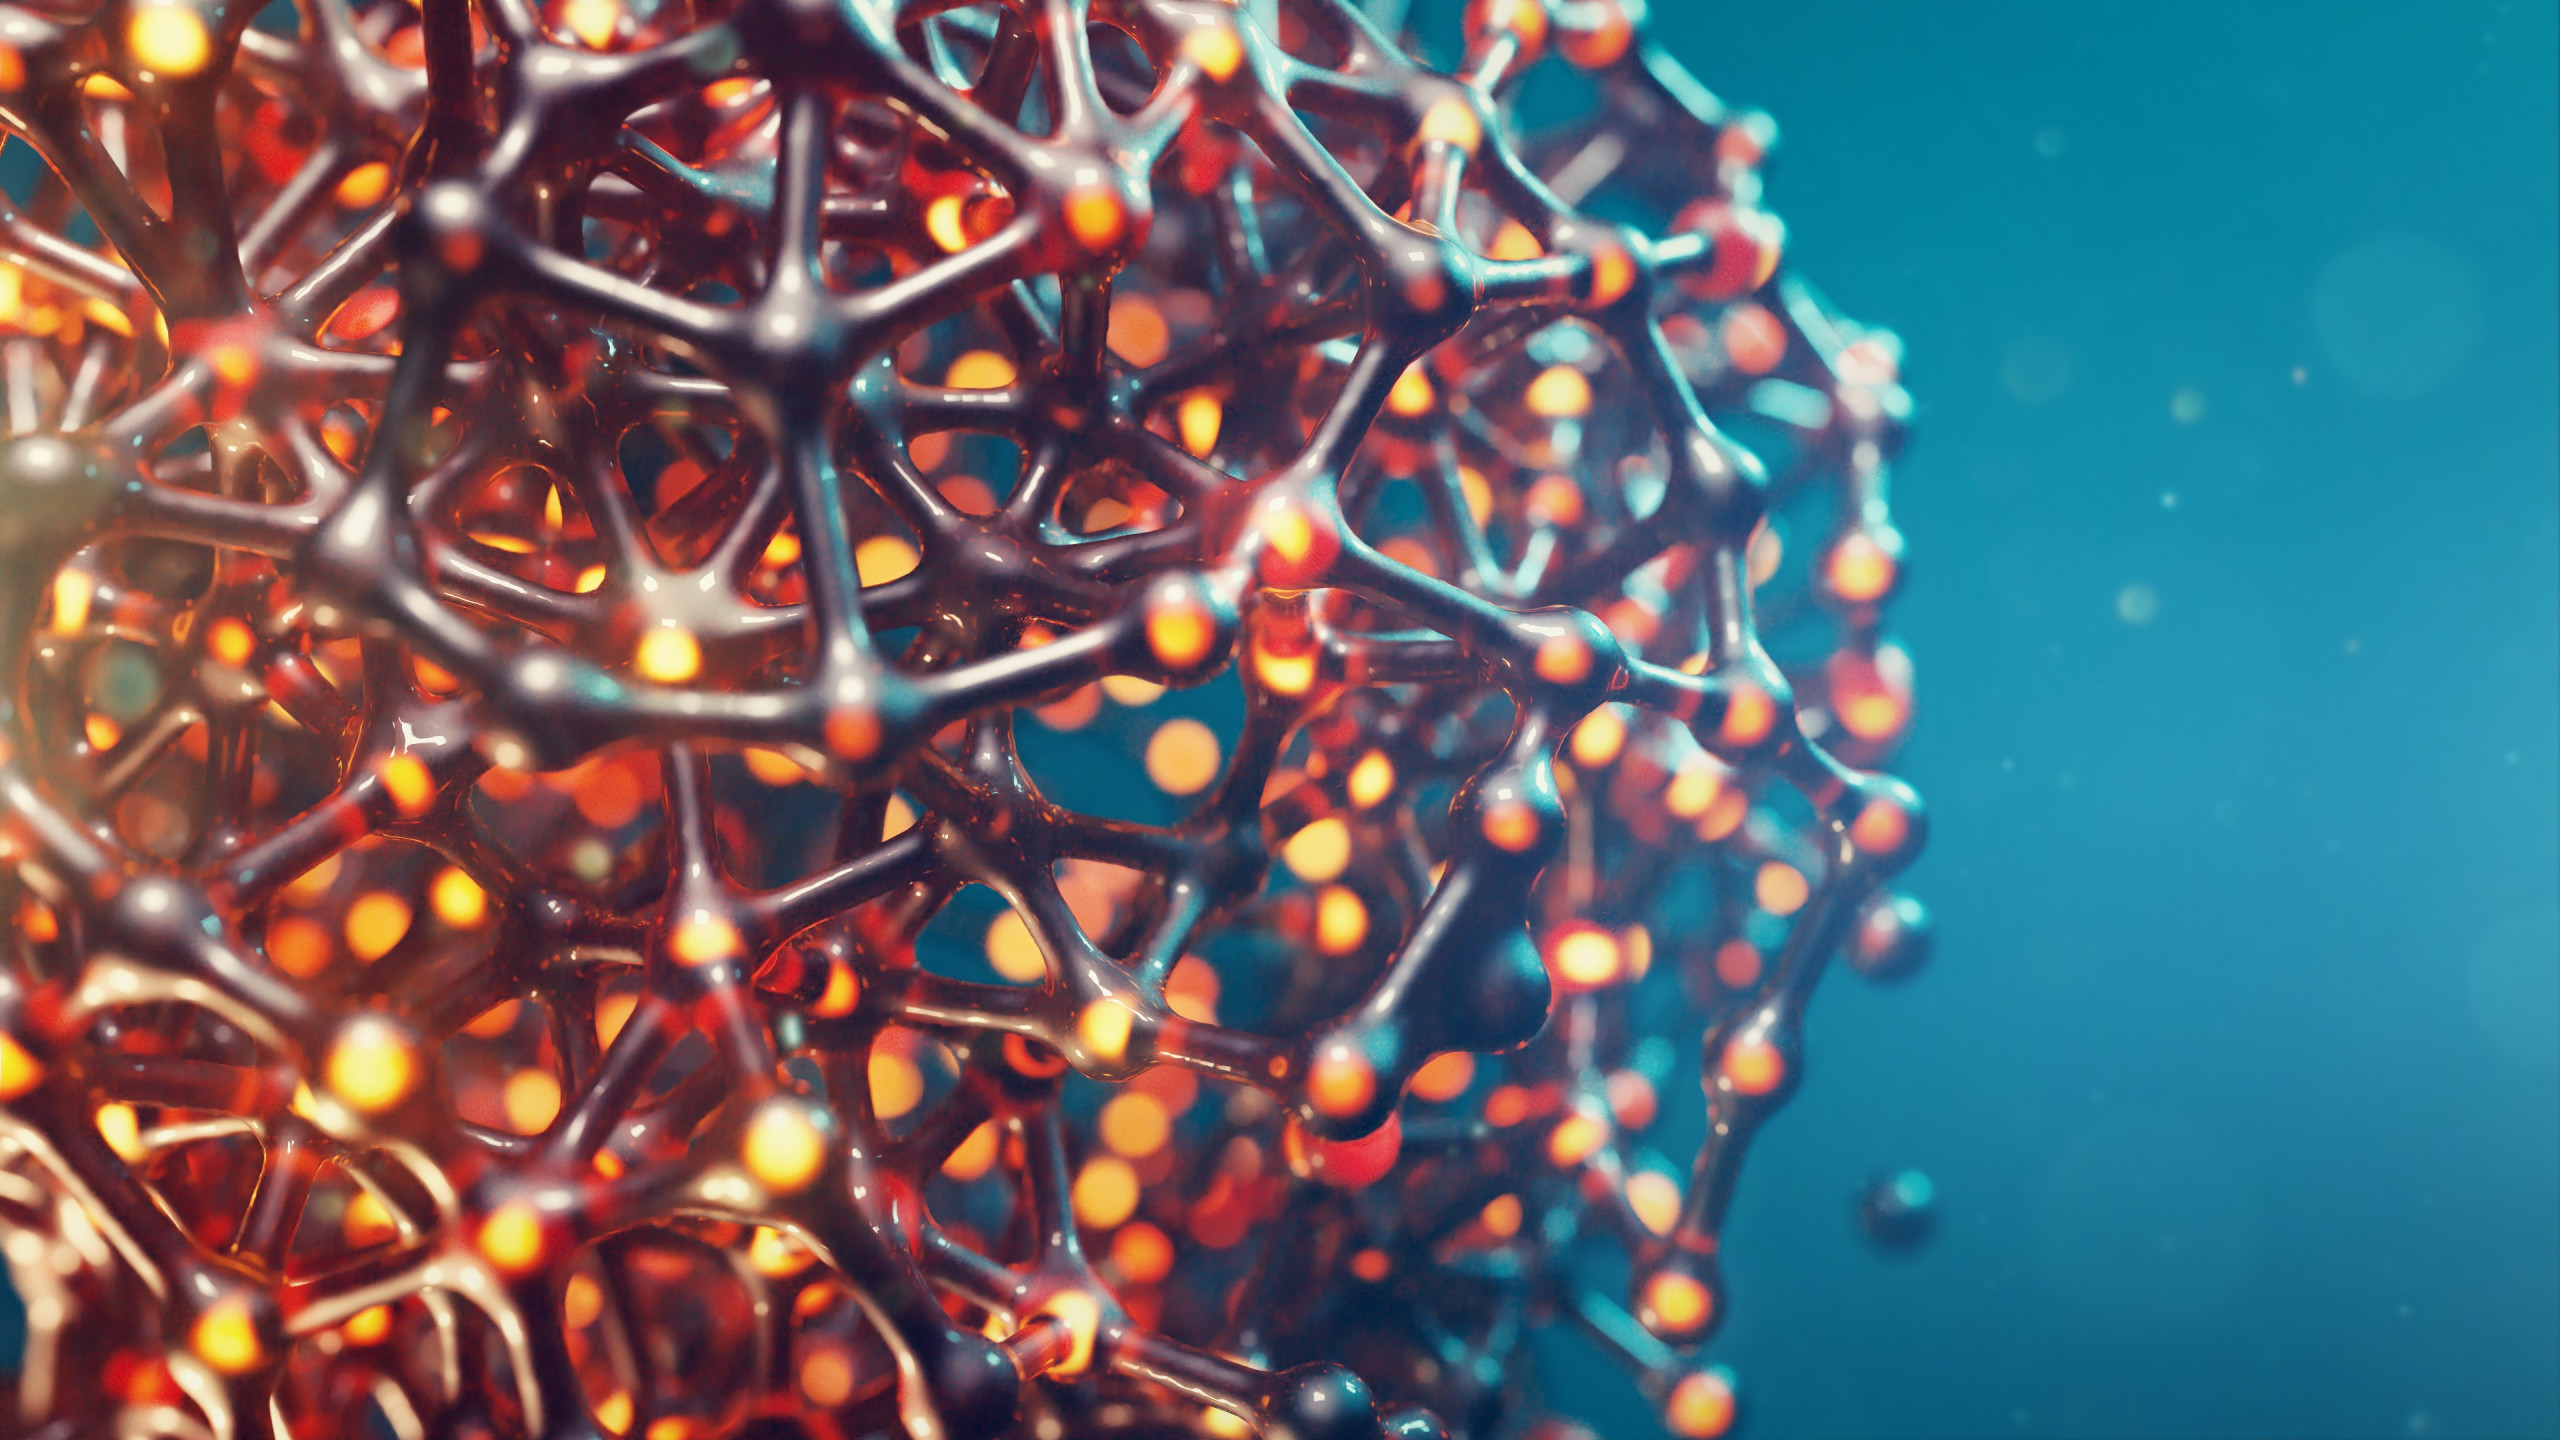 3D cellular structure wallpaper 2560x1440